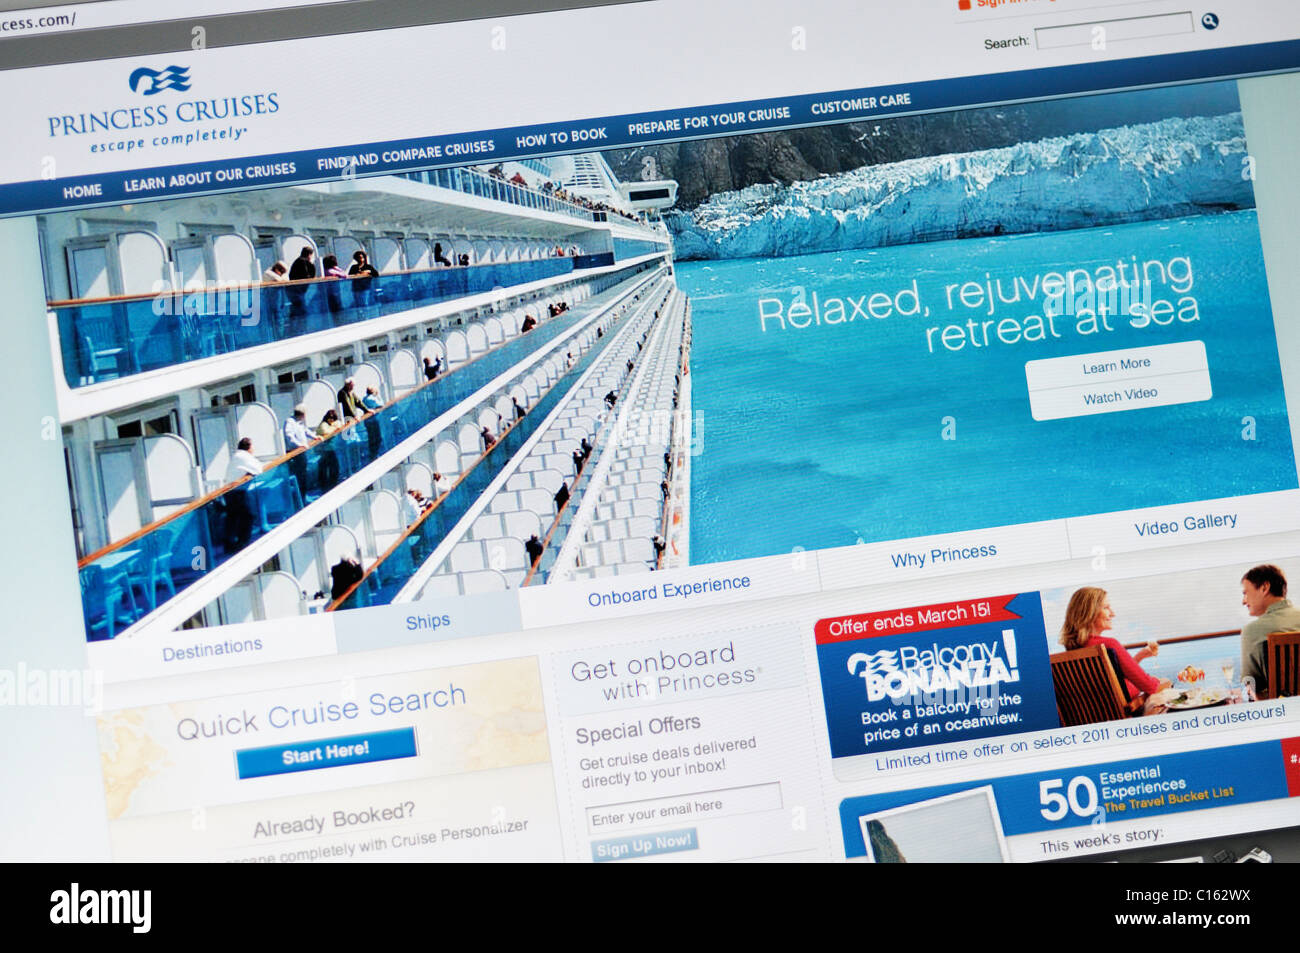 Princess Cruises website - Stock Image